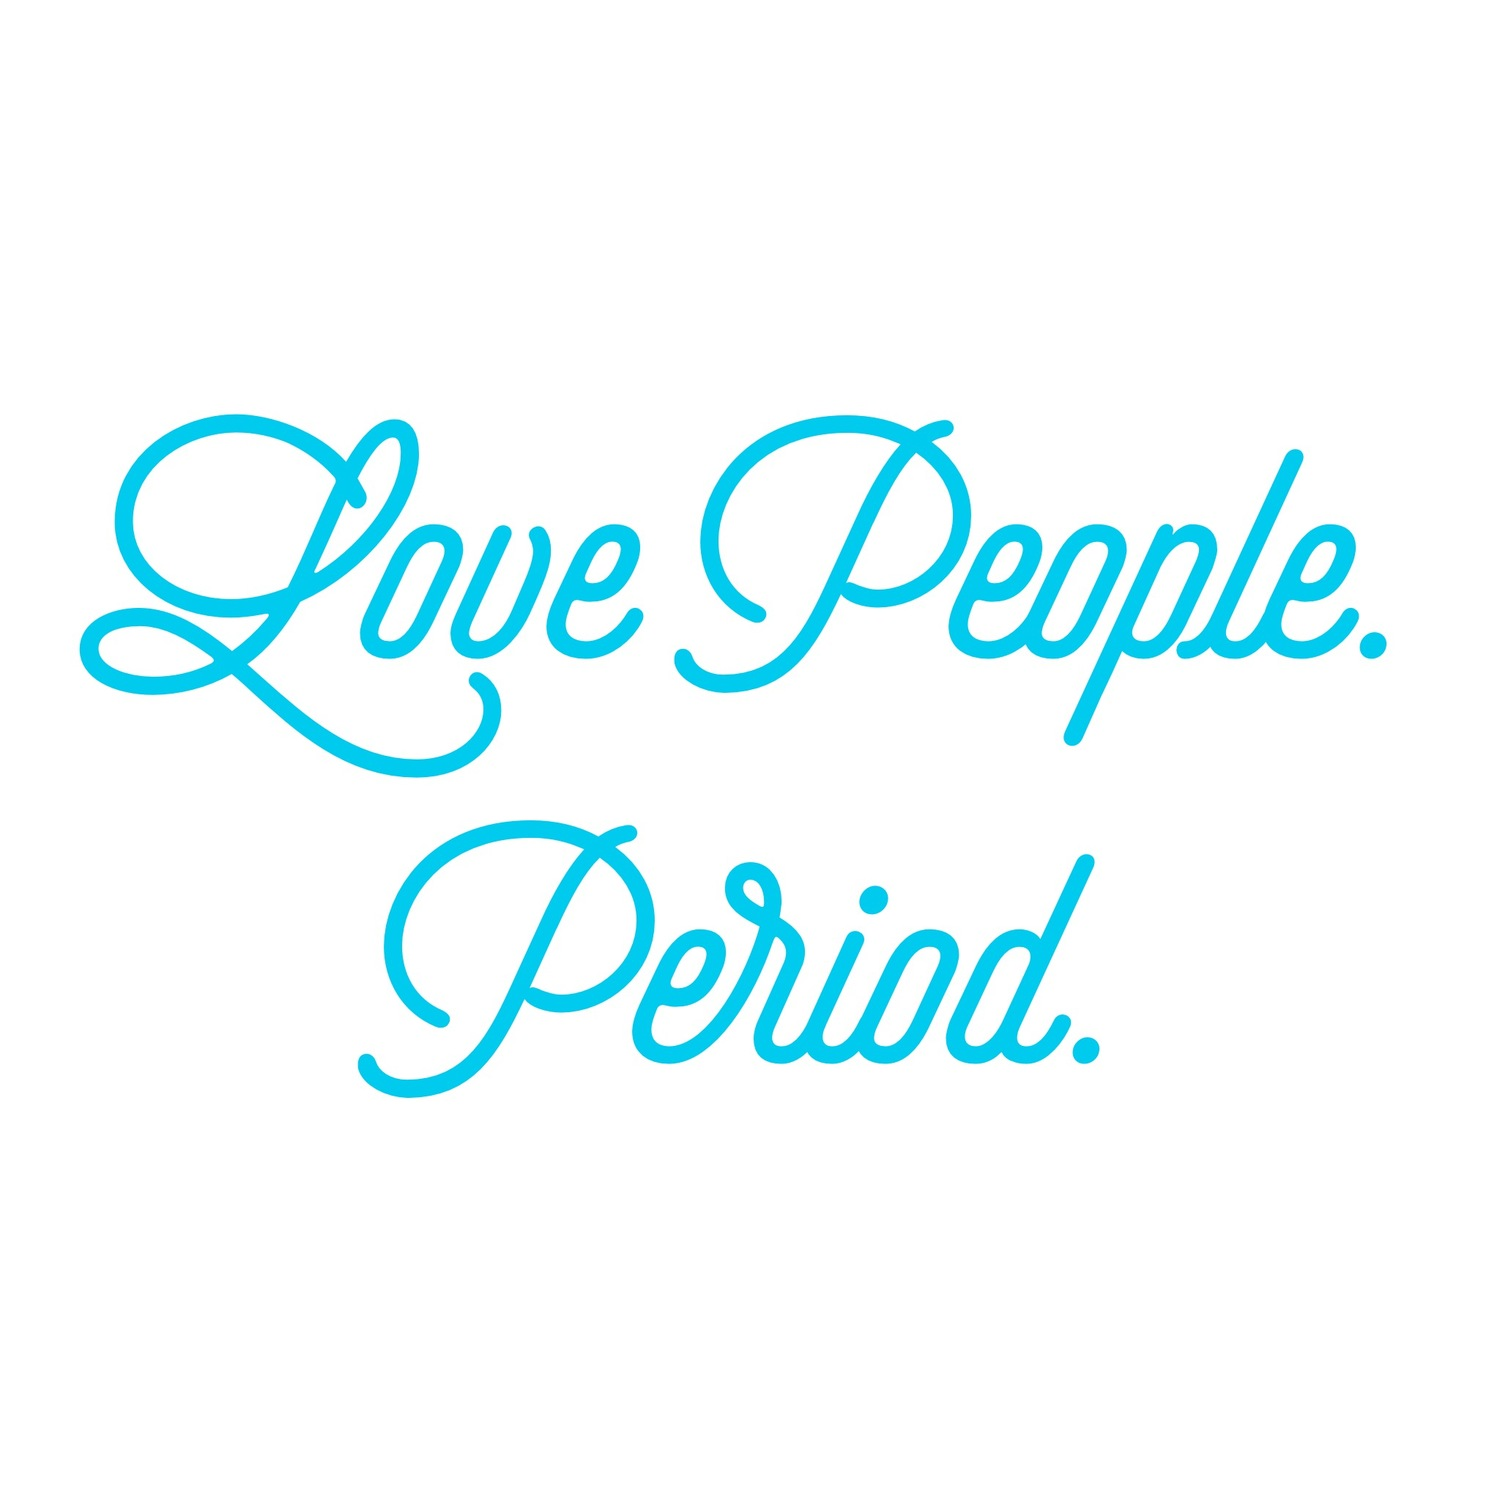 Love People. Period.